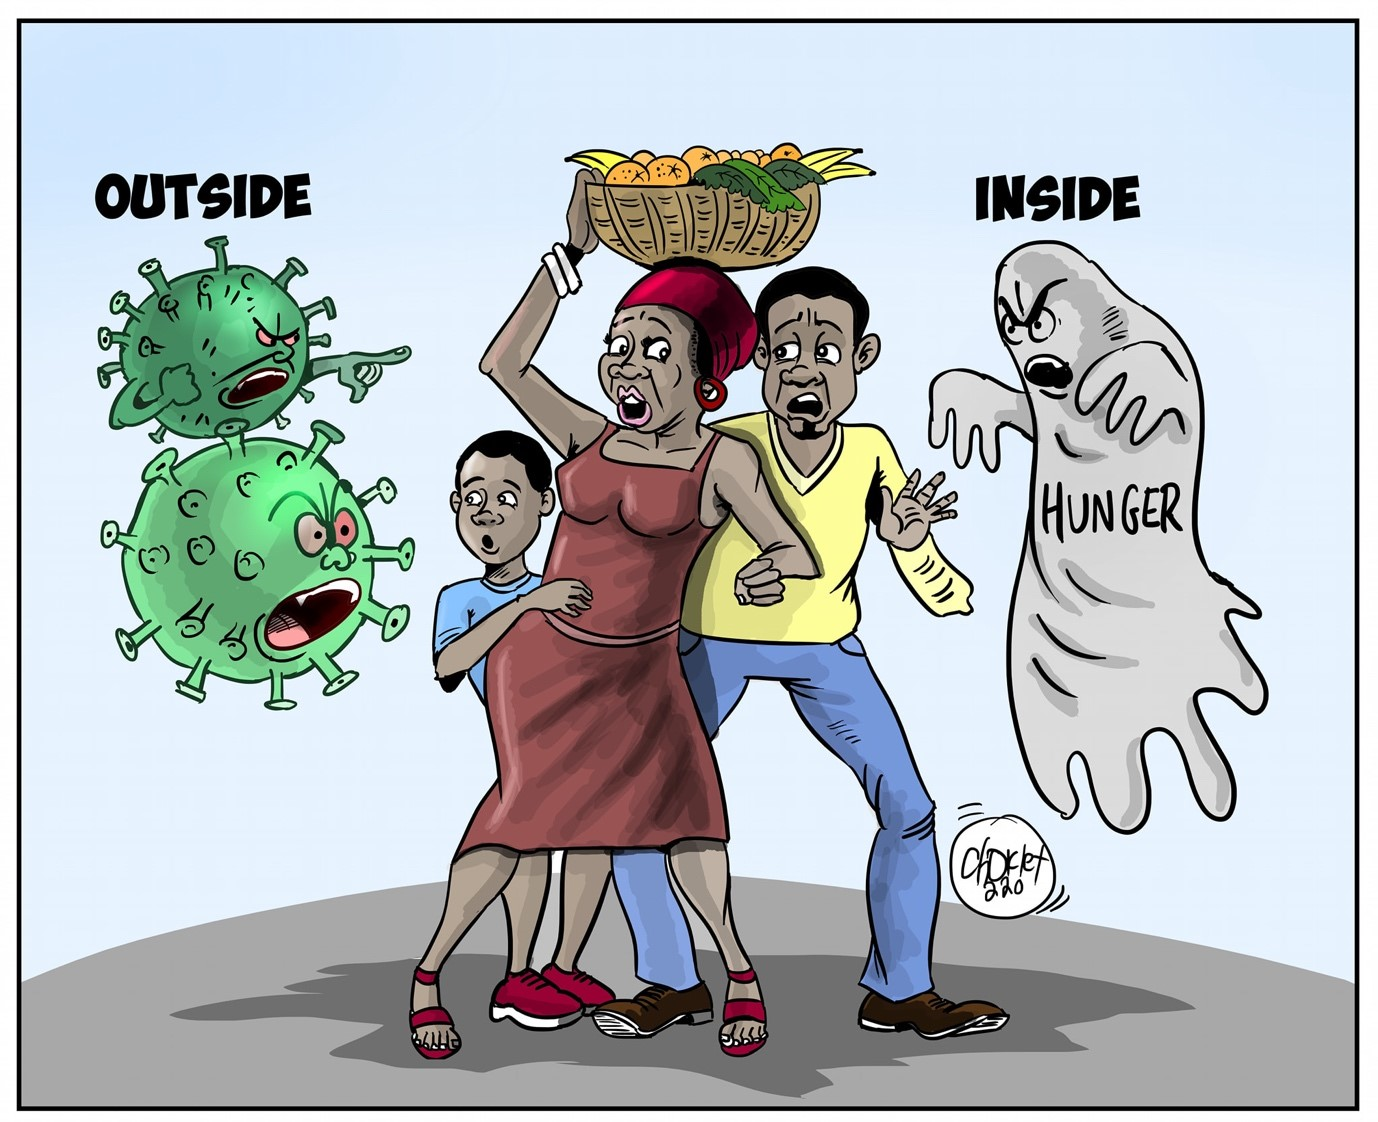 Cartoon of a family facing hunger and pandemic